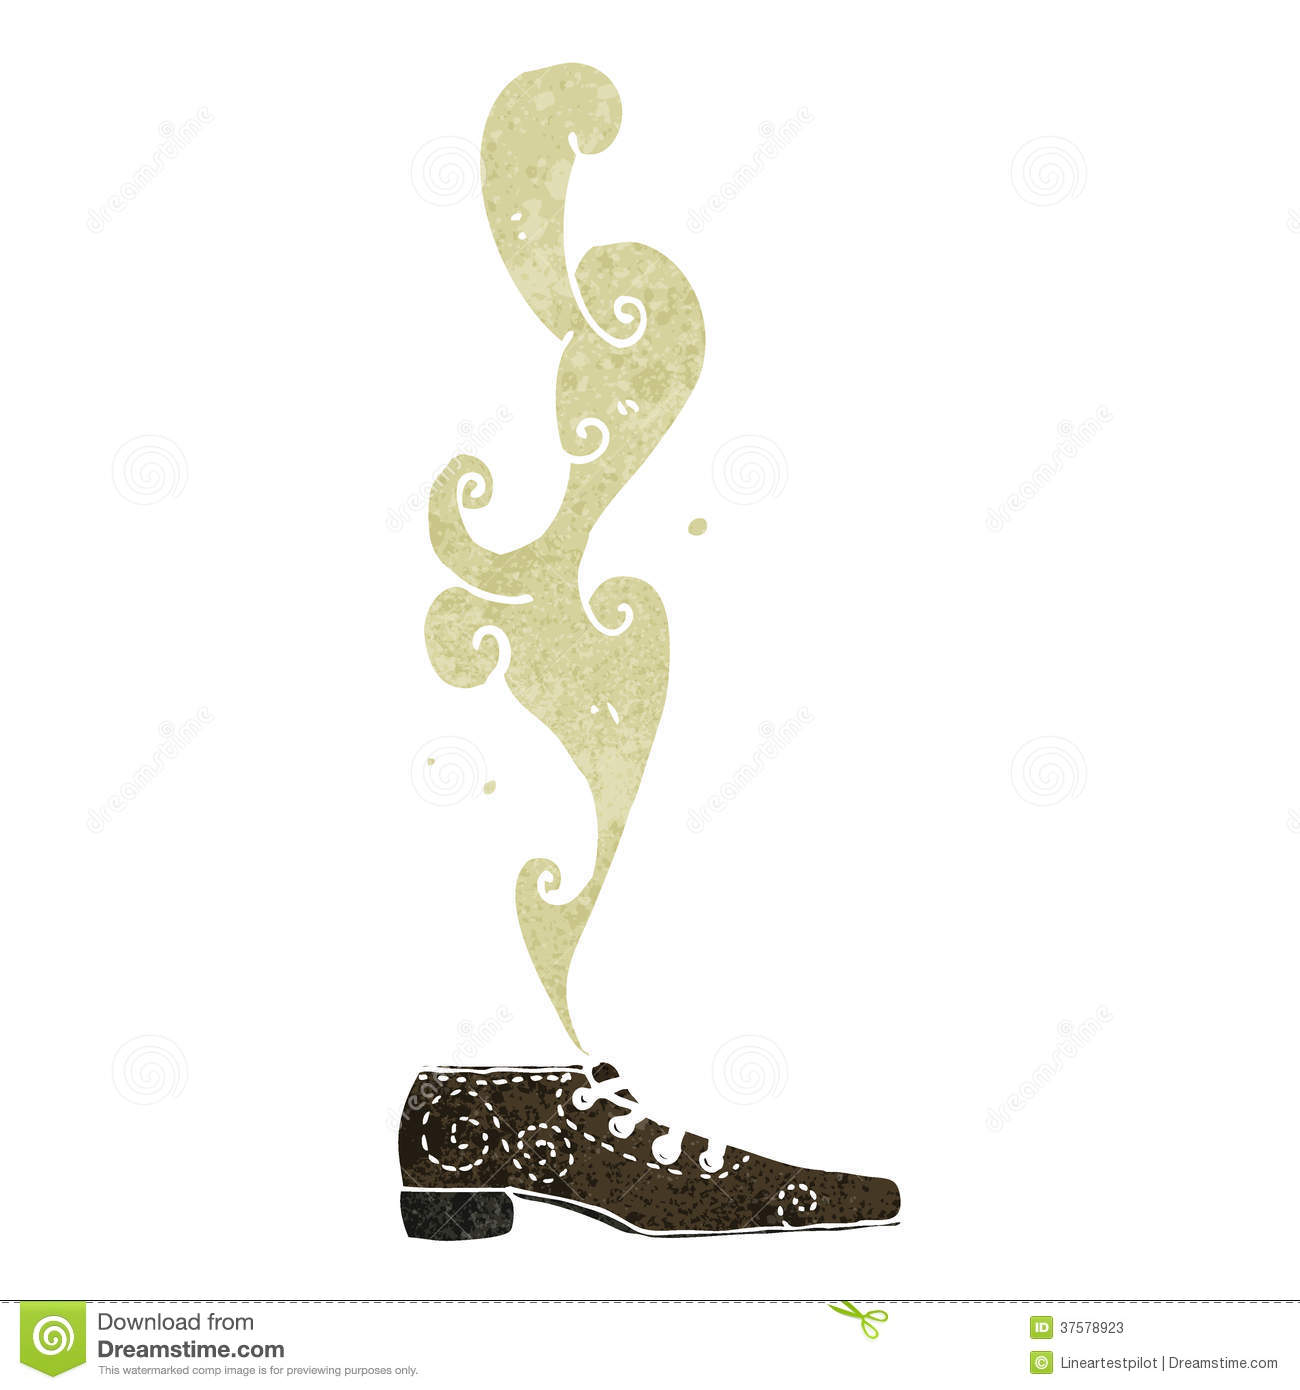 Retro Cartoon Smelly Shoe Stock Vector Illustration Of Character